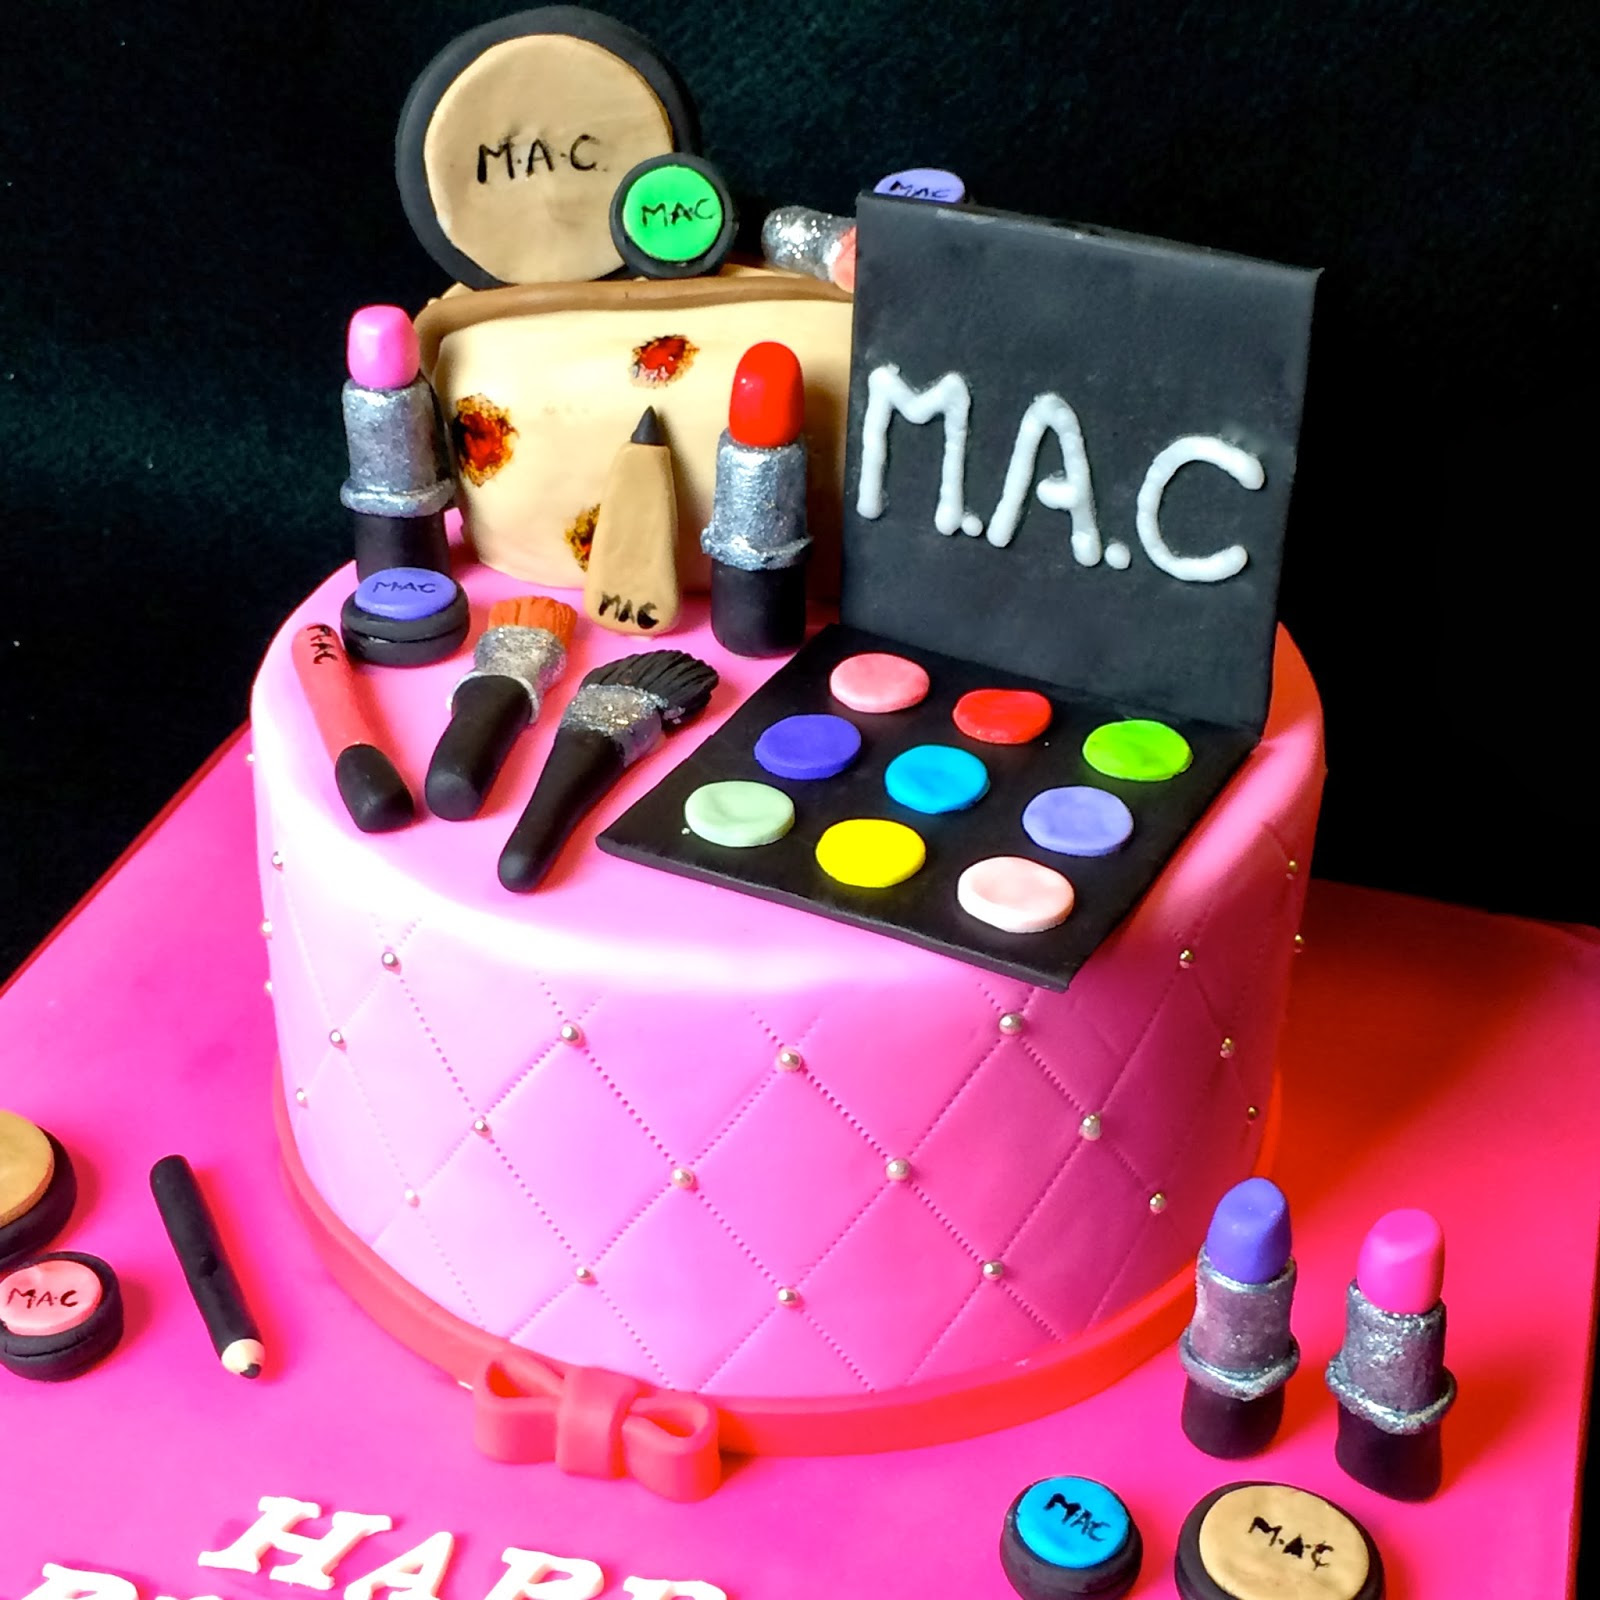 Wacky And Whimsical Birthday Cake Ideas For Women